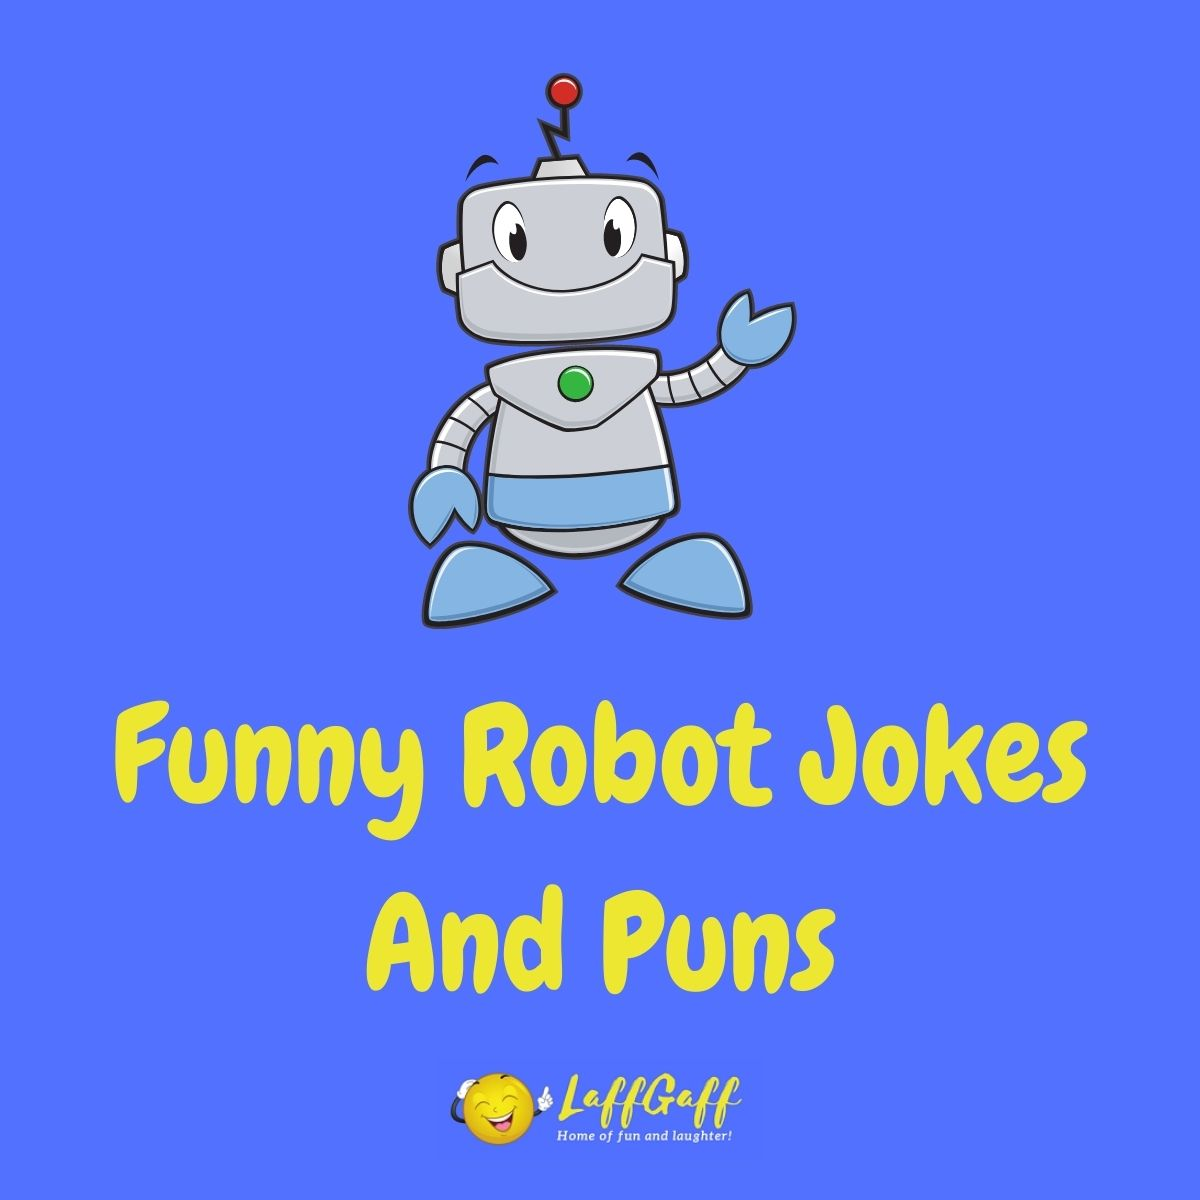 Featured image for a page of funny robot jokes and puns.